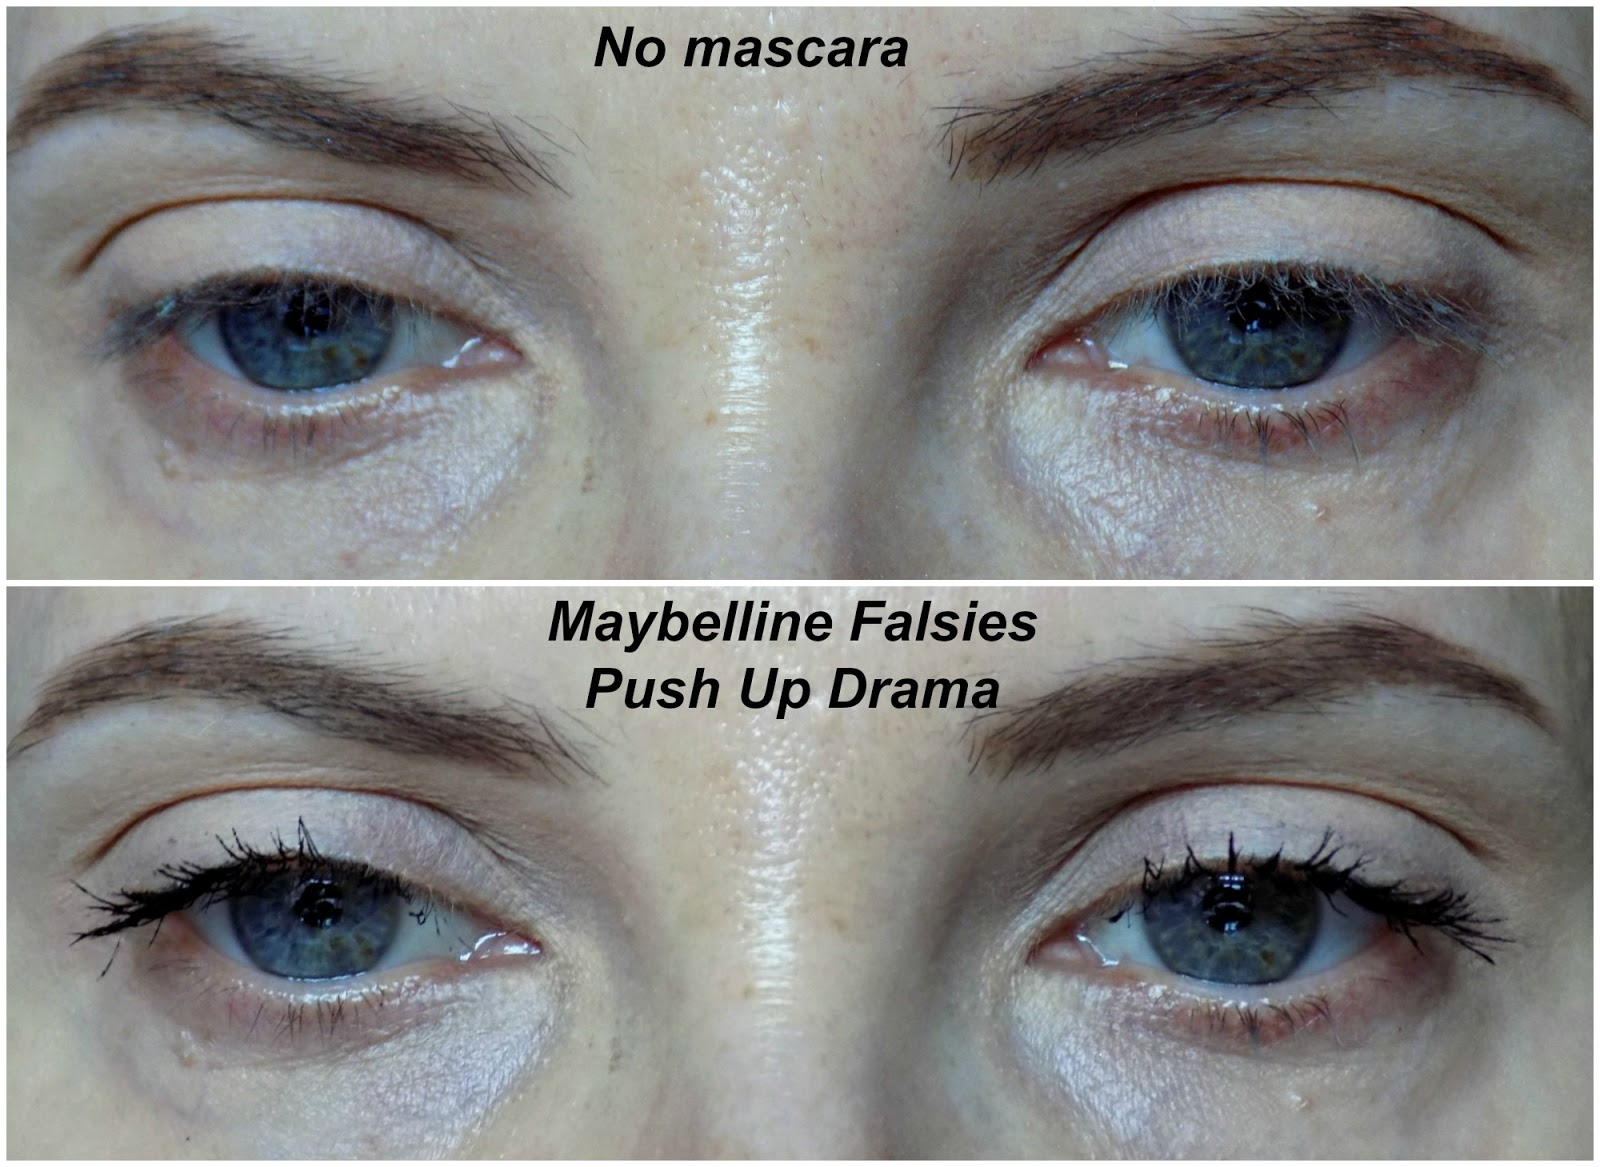 Maybelline Falsies Push Up Drama mascara